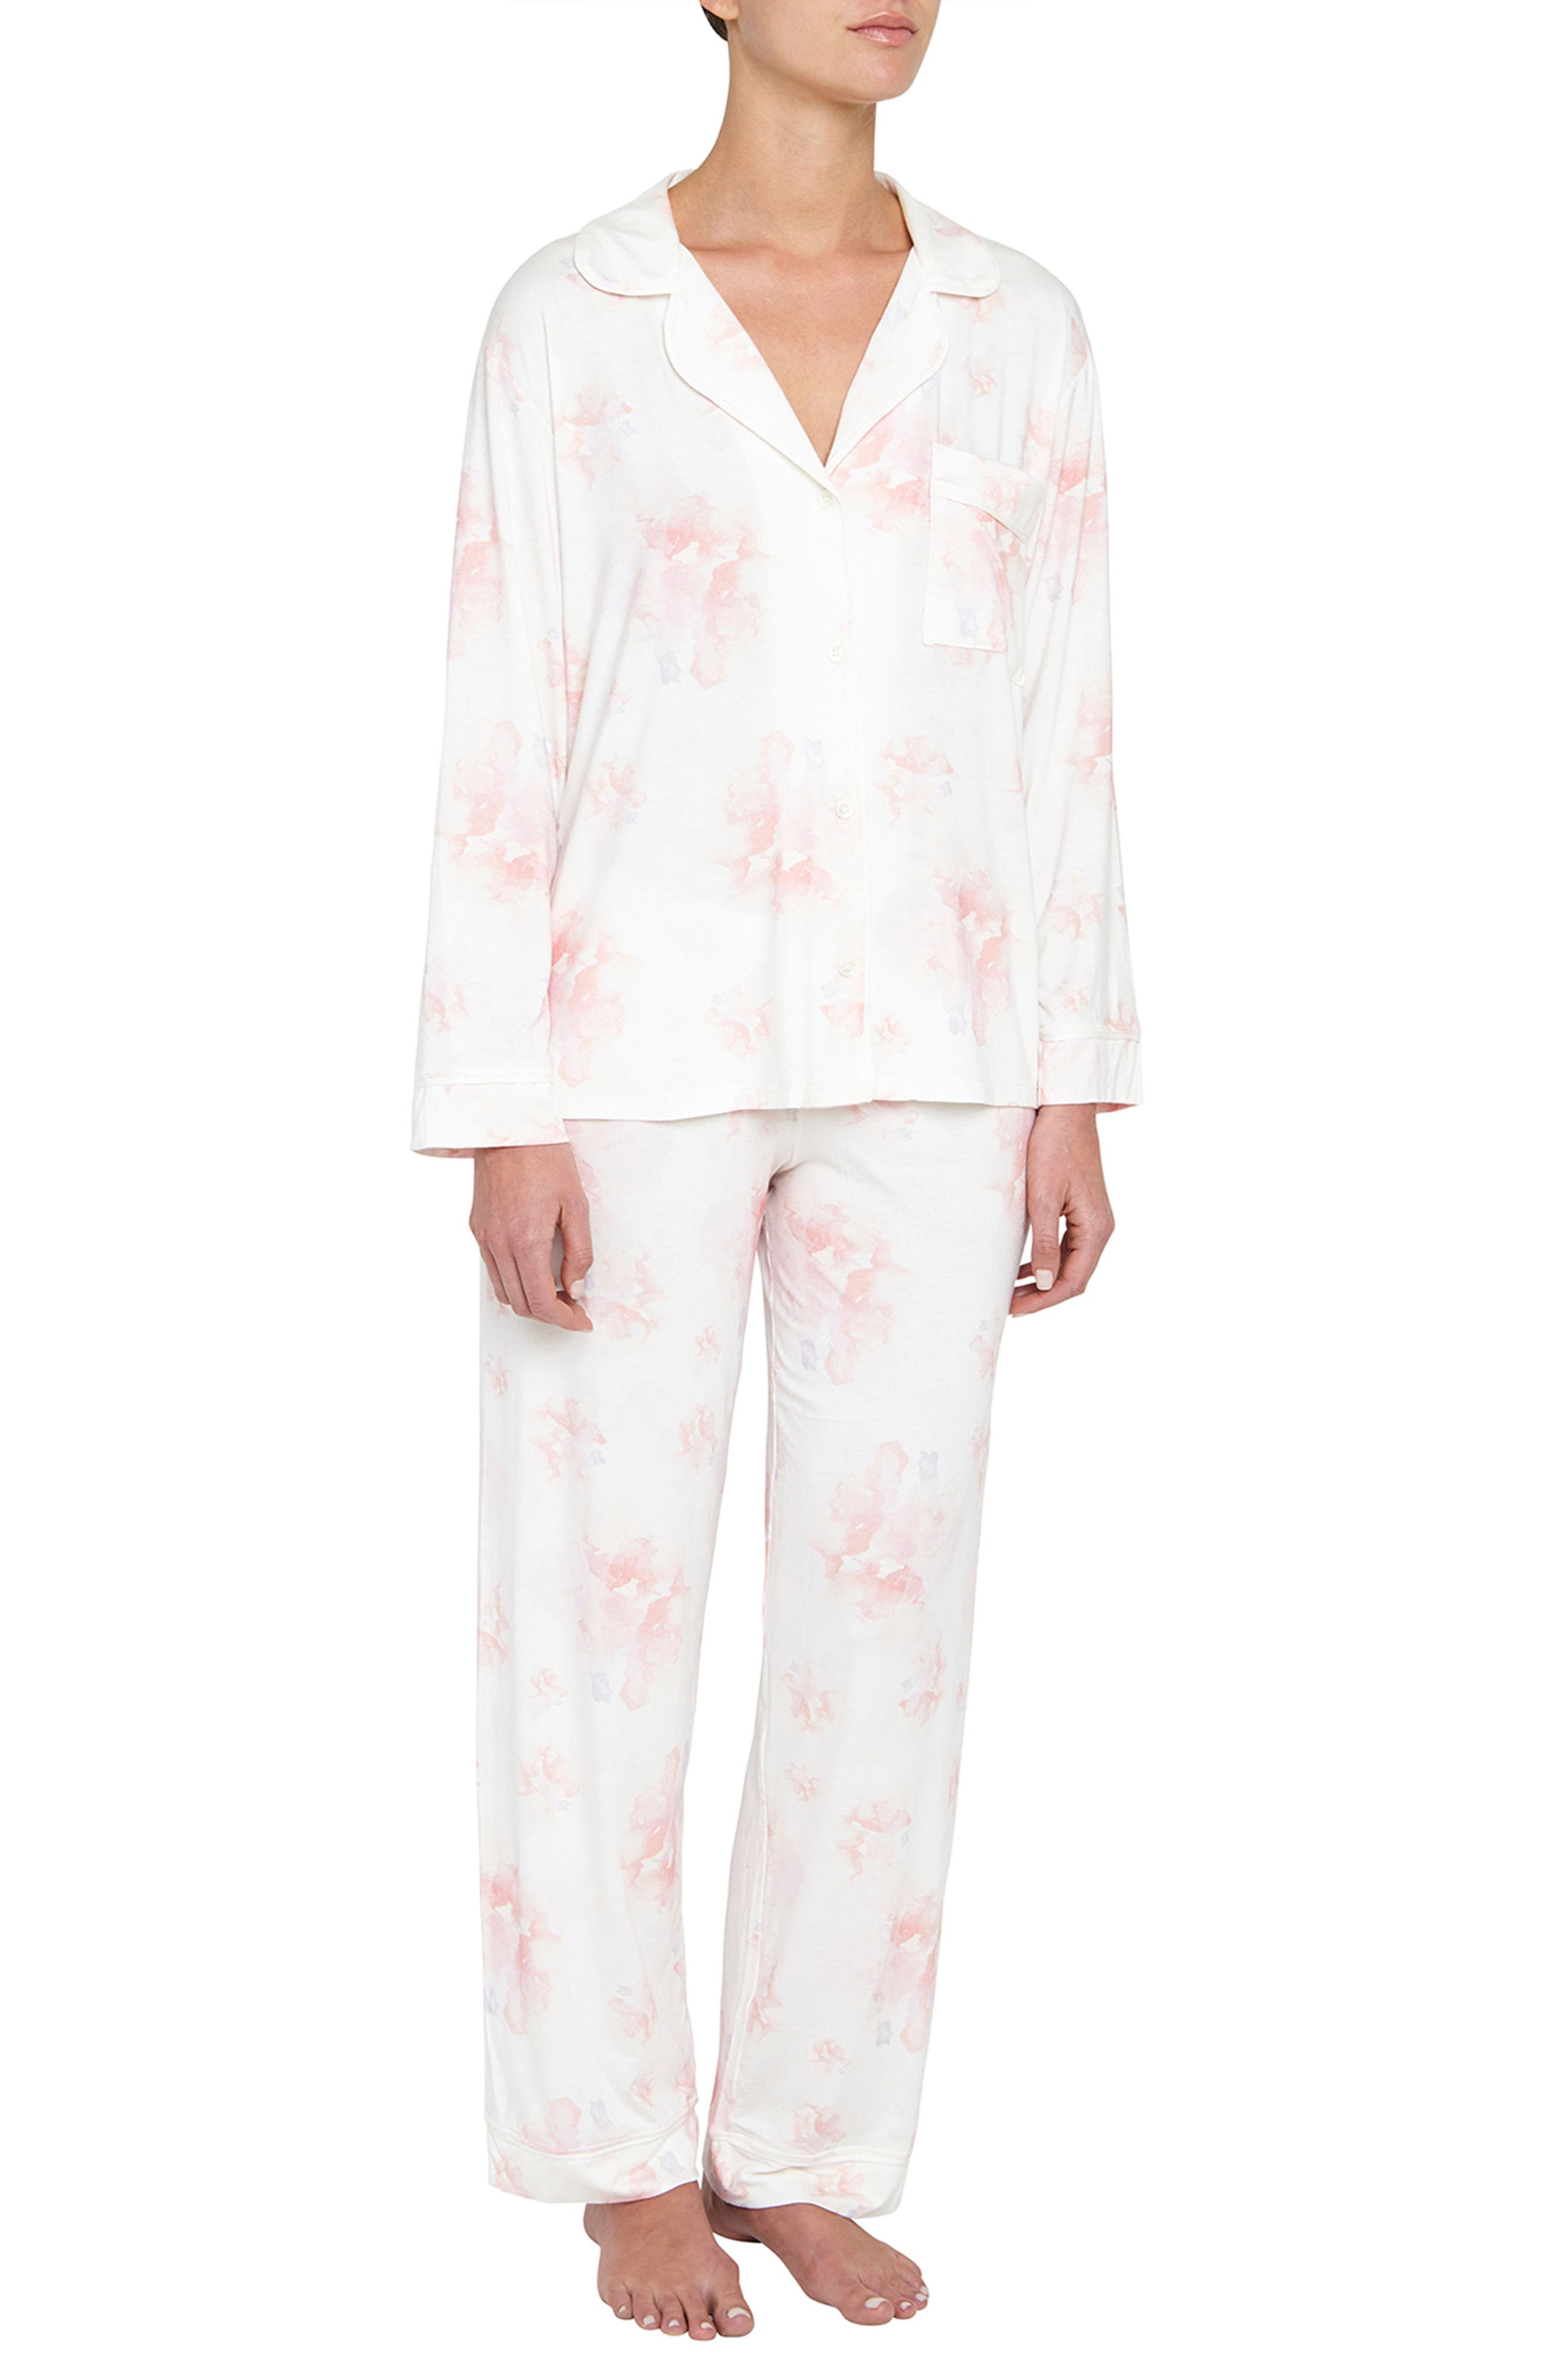 EBERJEY Aquarela The Long Pajamas, Main, color, 904